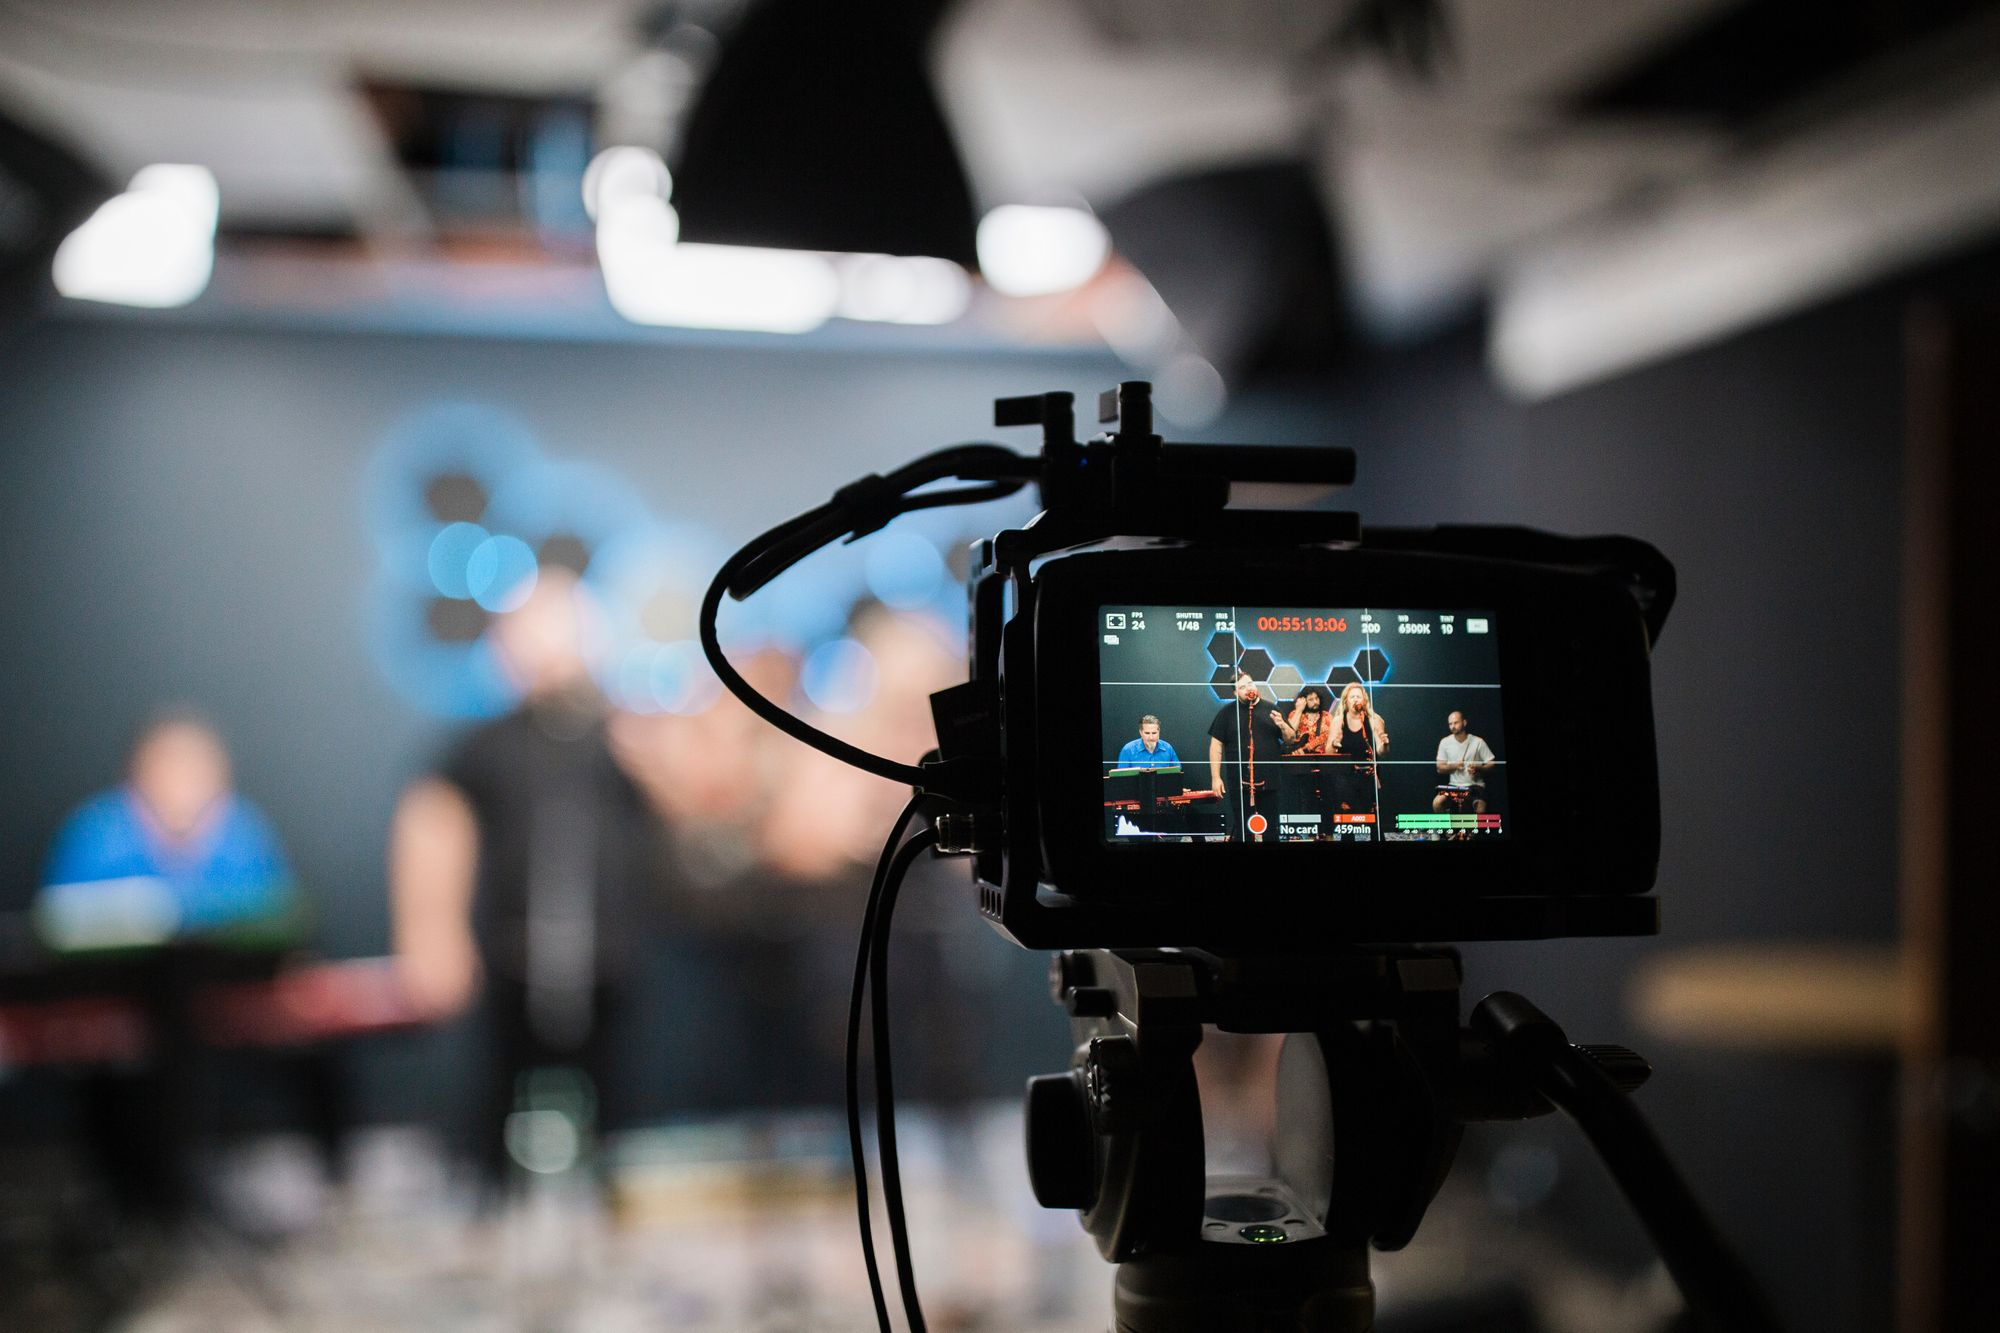 Top 5 Best Live Streaming Webcams for All Budgets